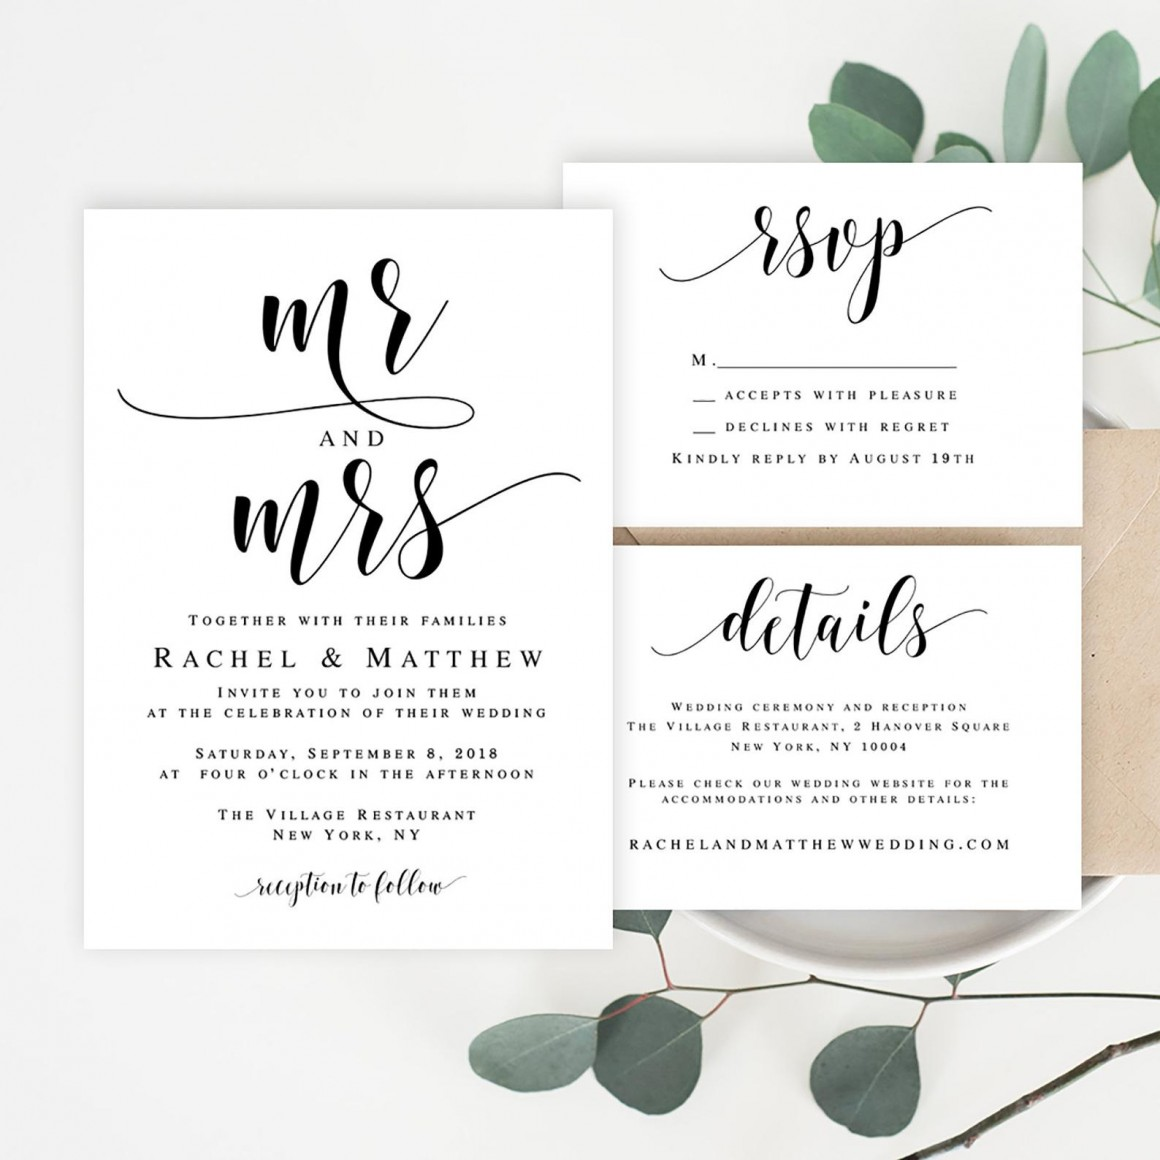 Inexpensive Wedding Invitation Ideas: Inexpensive Wedding Invitations That Look Anything But